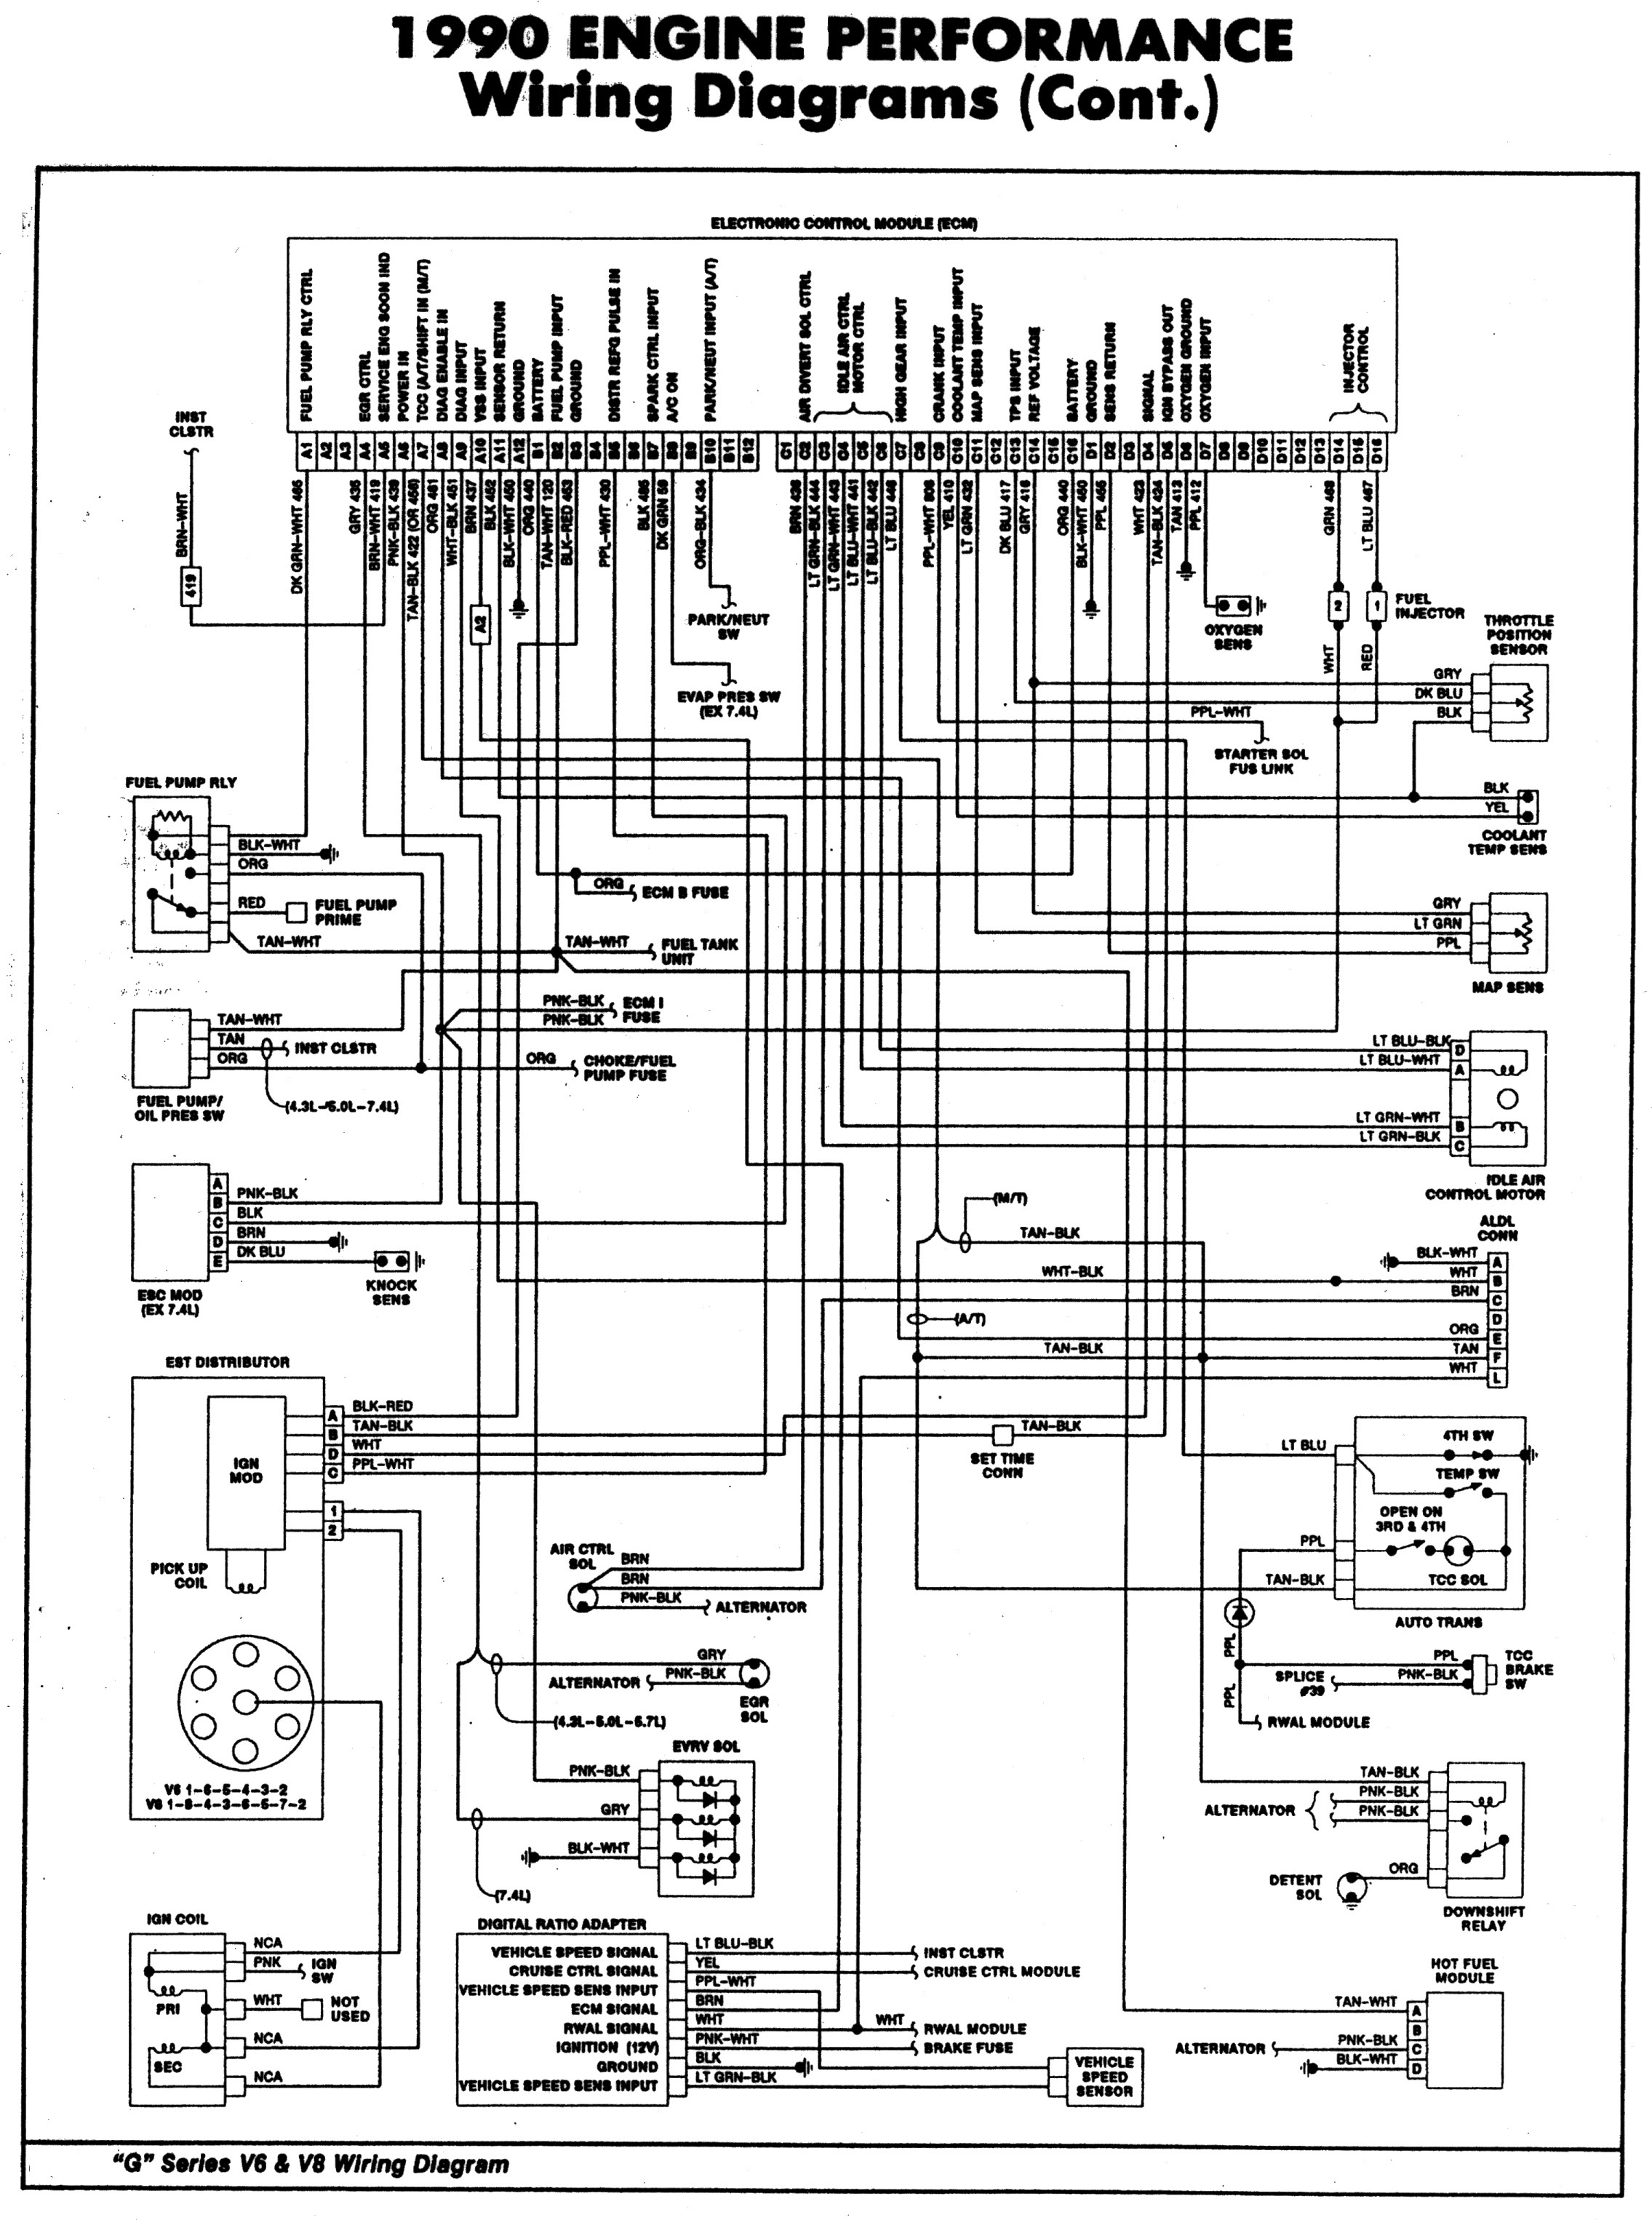 1990 coachmen wiring diagram 2 sg dbd de u20221990 coachmen wiring diagram wiring diagram rh [ 2271 x 3051 Pixel ]